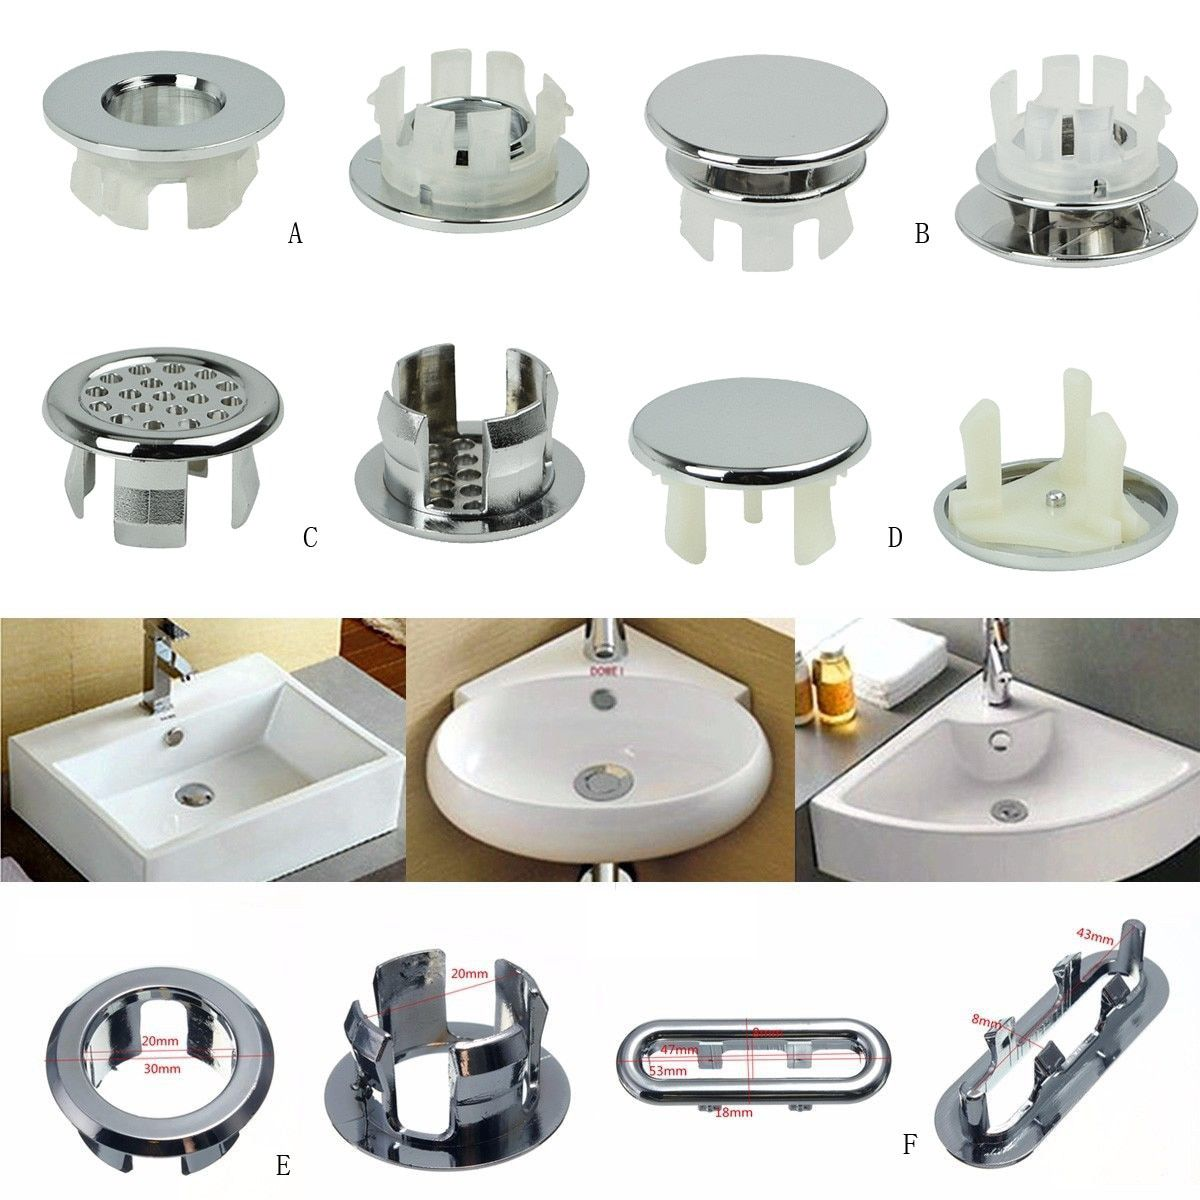 1pcs Sink Hole Round Overflow Cover Ceramic Pots Basin Sink Overflow Covers 55p Bathroom Accessories Sets Basin Sink Cheap Bathroom Accessories